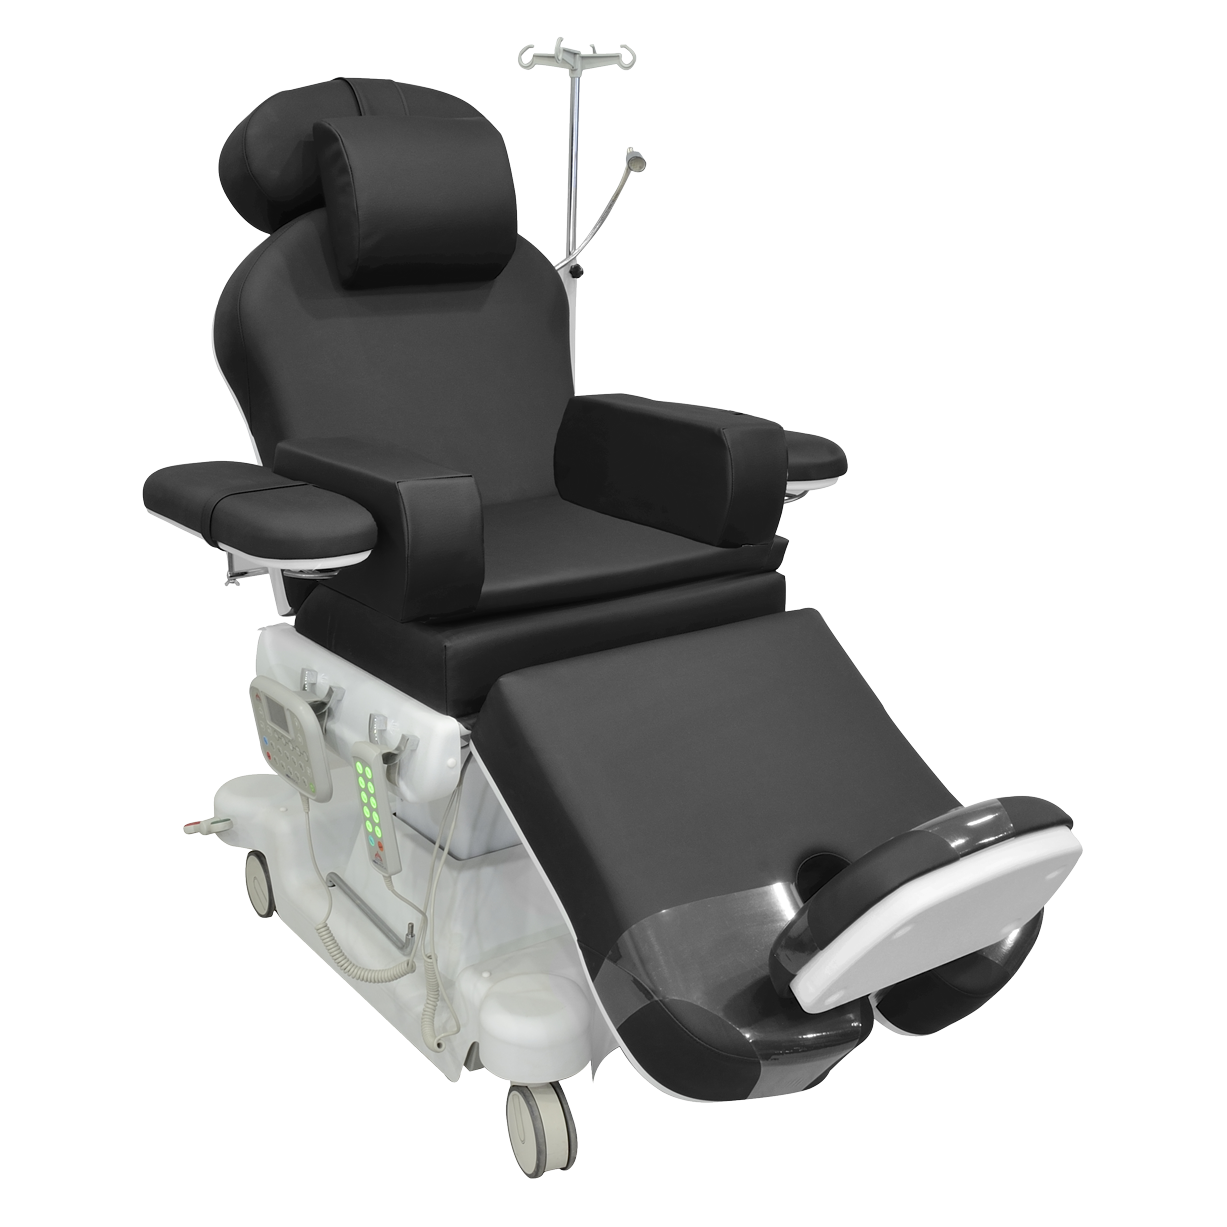 Image of: Photos of Medical Recliner Chairs